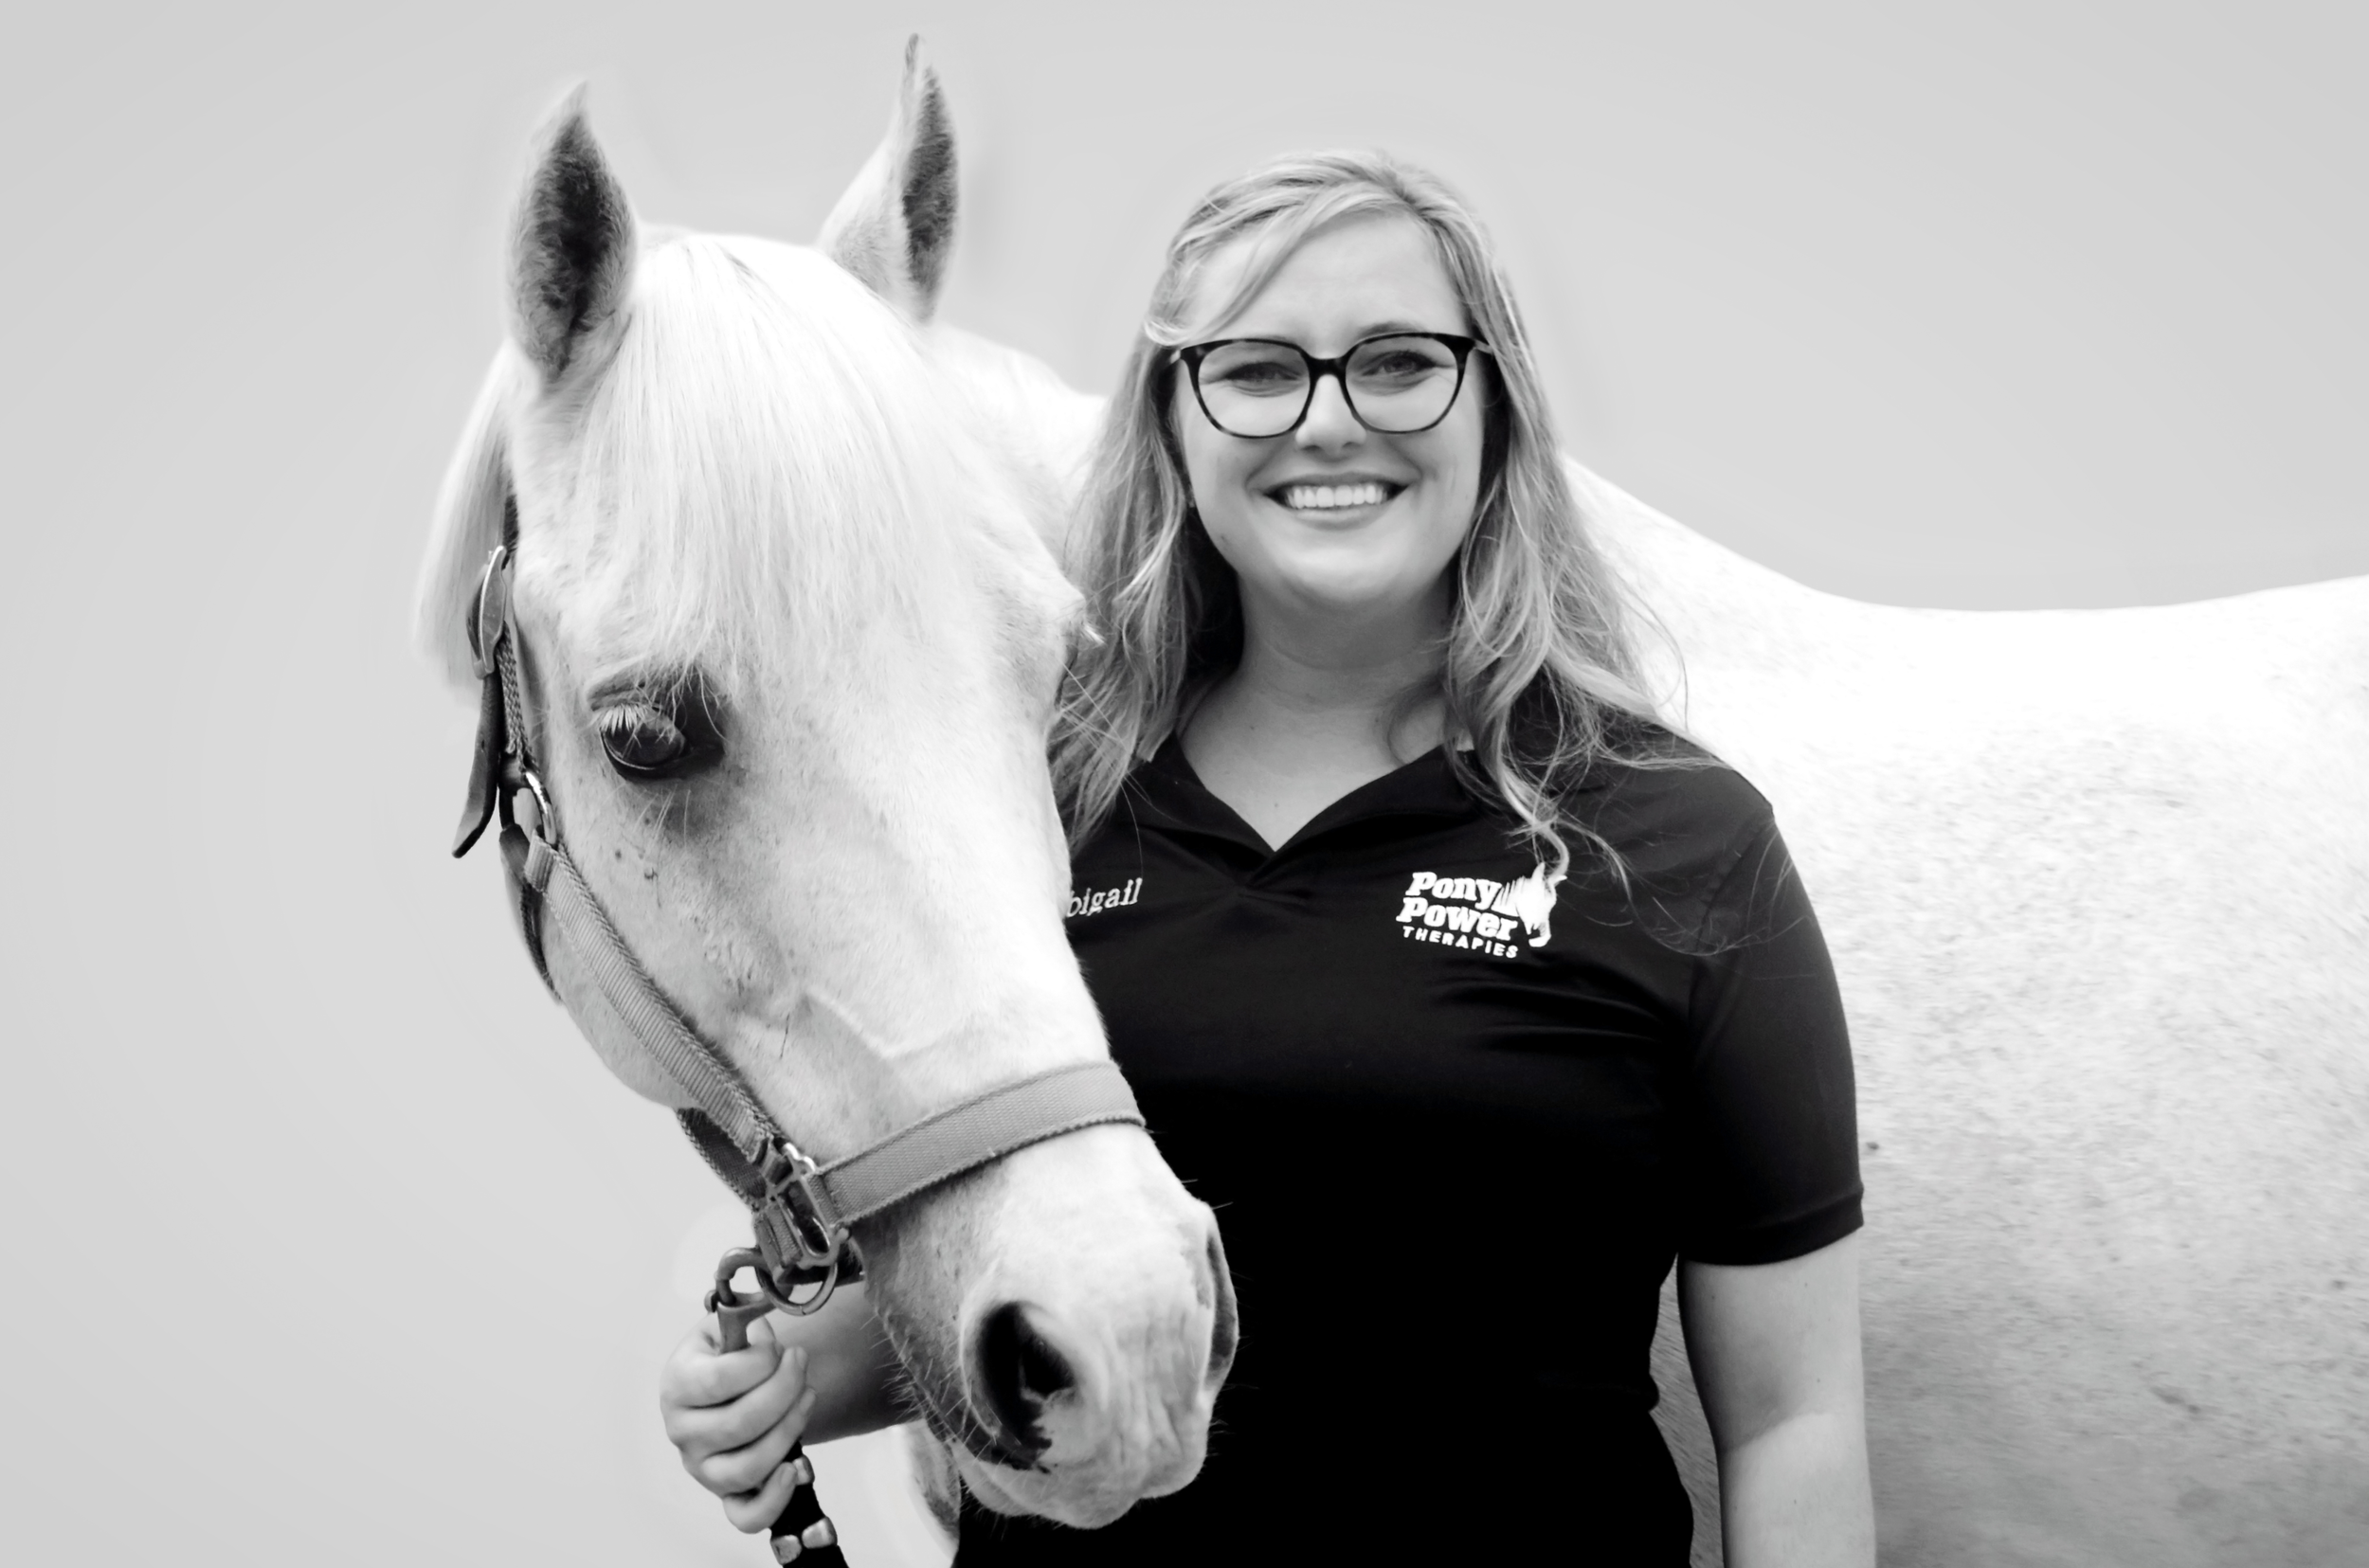 Abigail came to Pony Power as a volunteer in 2016. She grew up riding but especially appreciates the bonds and skills that are created while practicing horsemanship. Abigail is a 2016 graduate of New York University where she earned a degree in psychology paired with minors in child and adolescent psychopathology, American Sign Language and animal studies. Abigail received her master's degree at Columbia University's School of Social Work in the Spring of 2019. She became a PATH International-certified instructor in 2018.